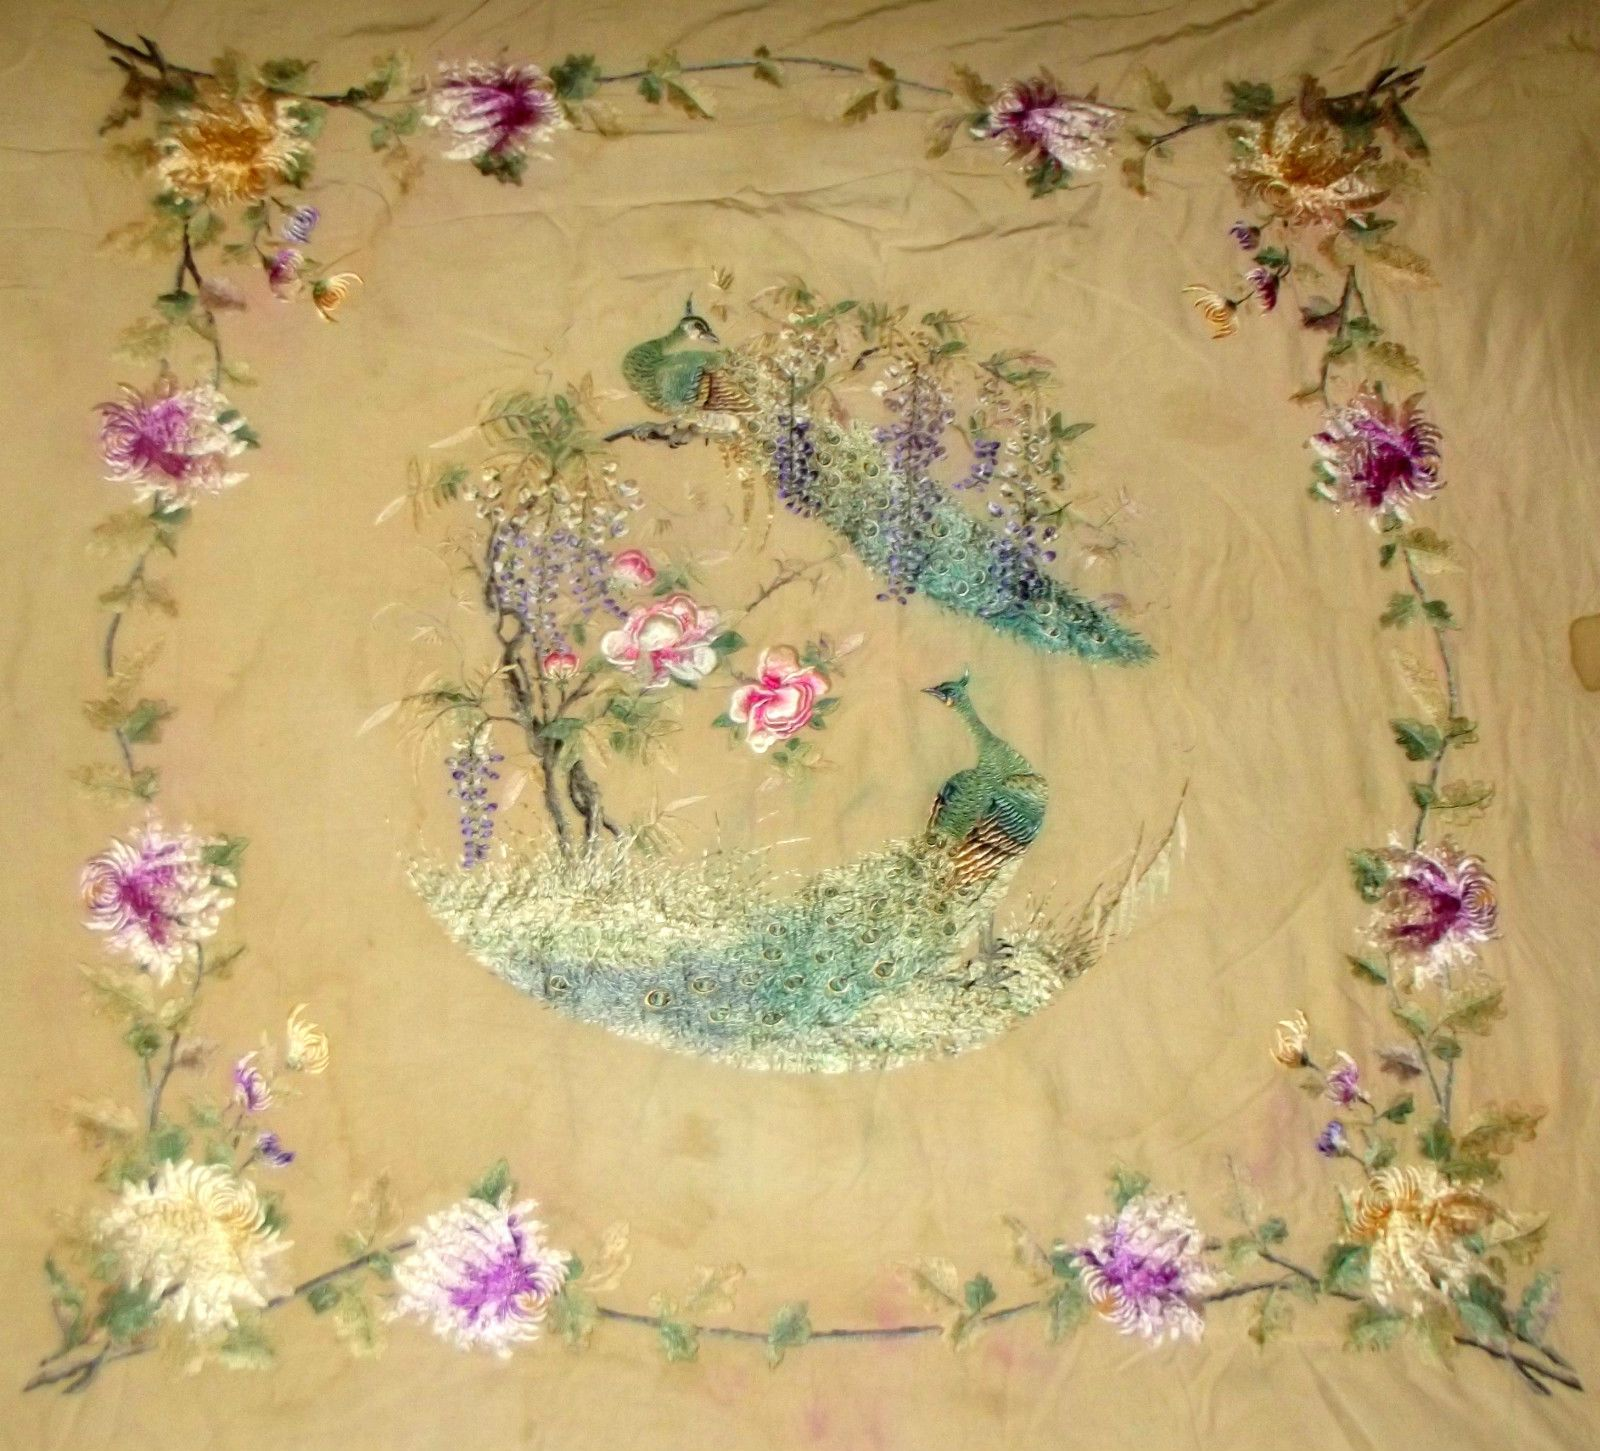 A LARGE QUALITY ANTIQUE VINTAGE CHINESE SILK EMBROIDERY QING DYNASTY 19th C